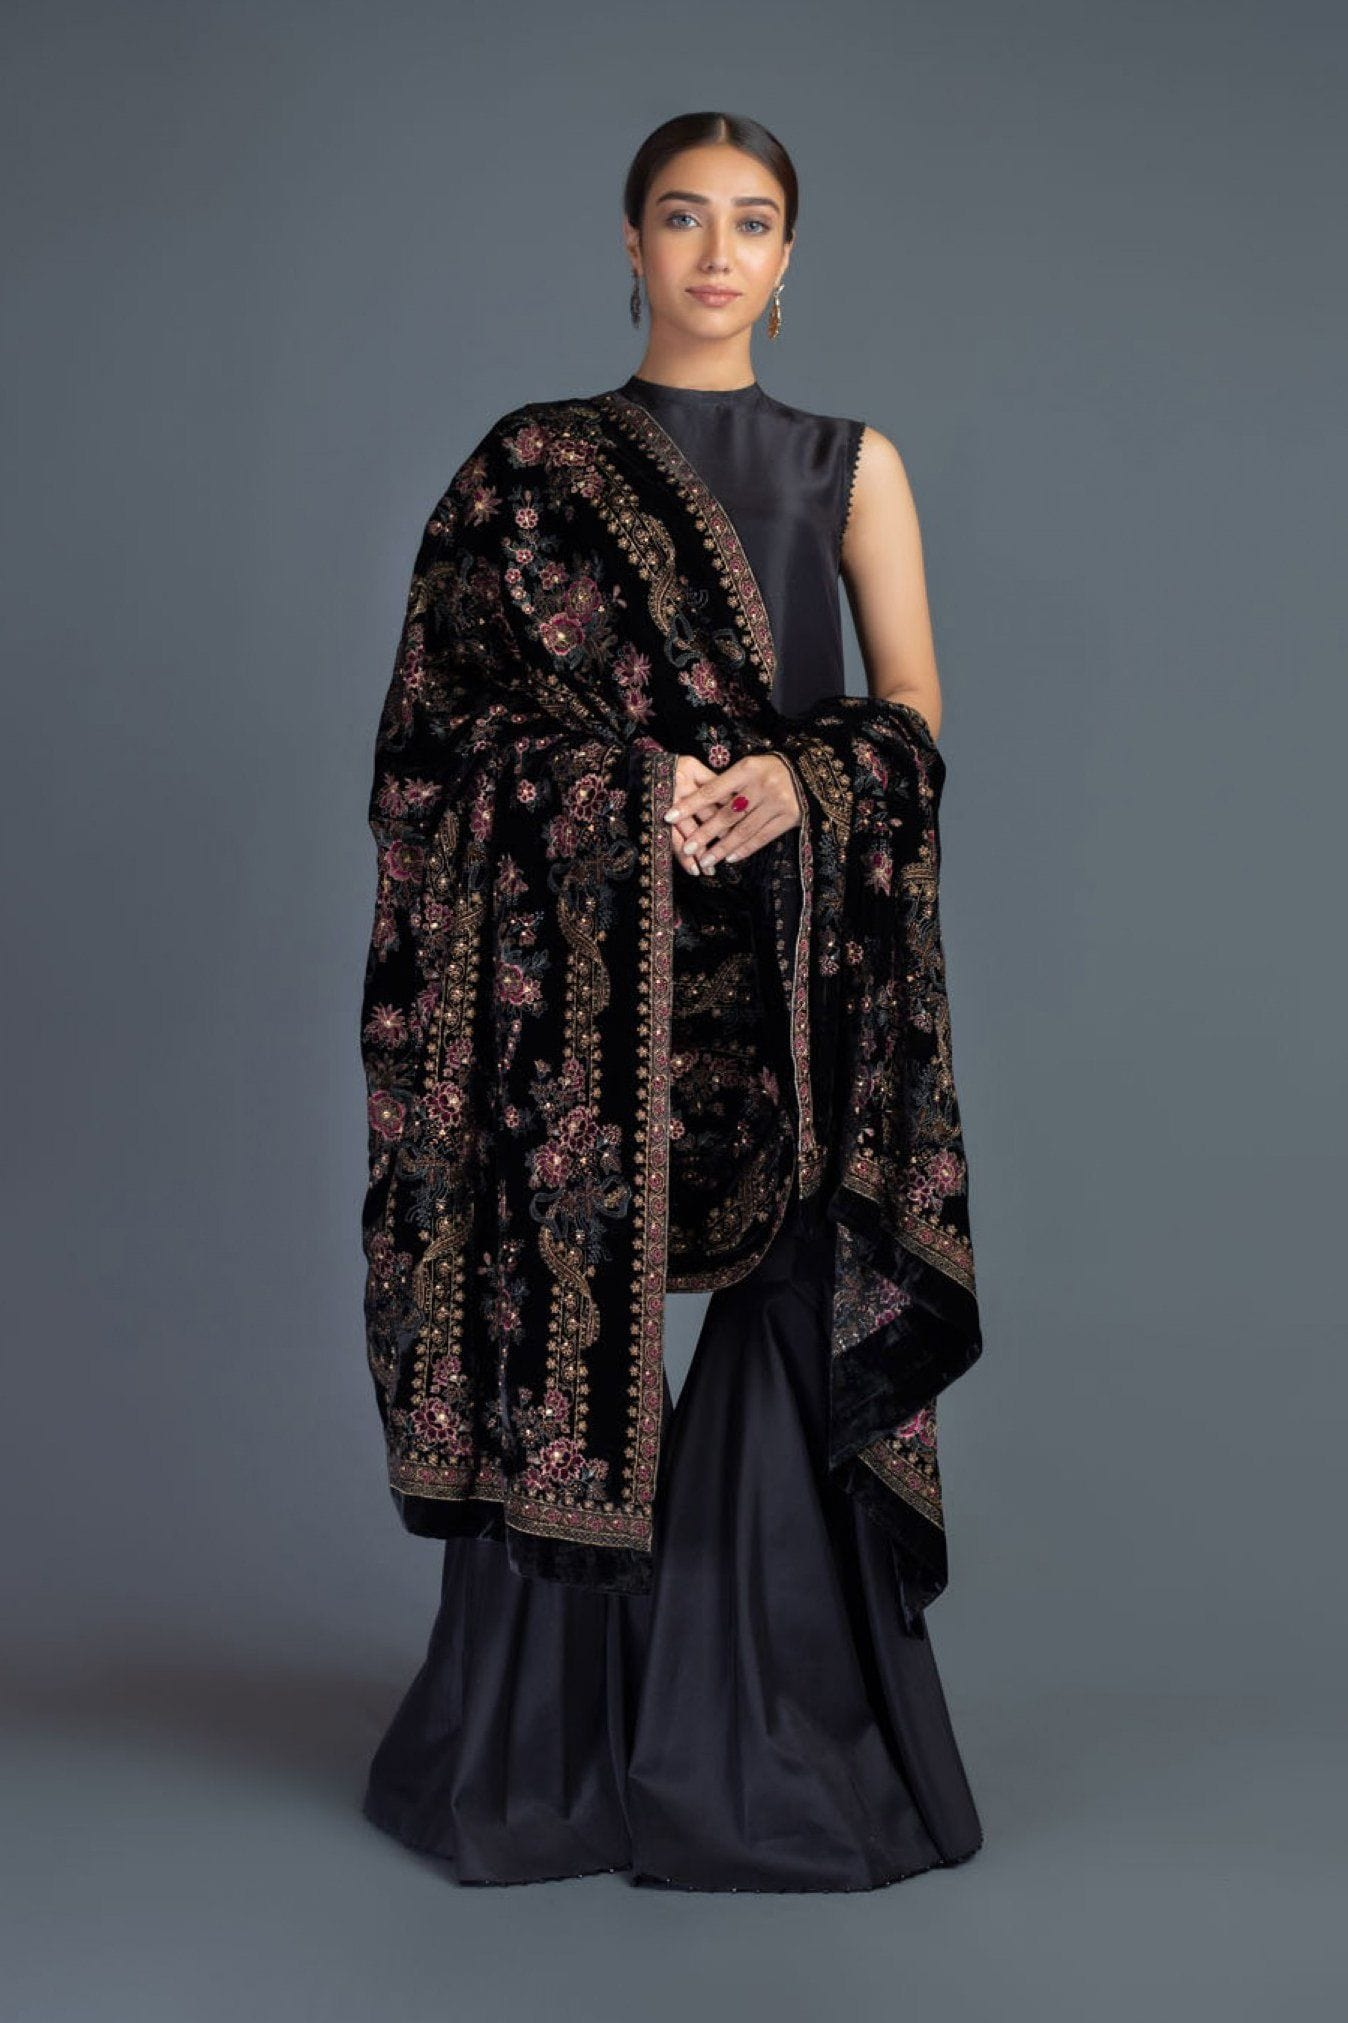 Rose Charm - Formal Heavy Embroidered Fancy Velvet Black Shawl - gracestore.pk